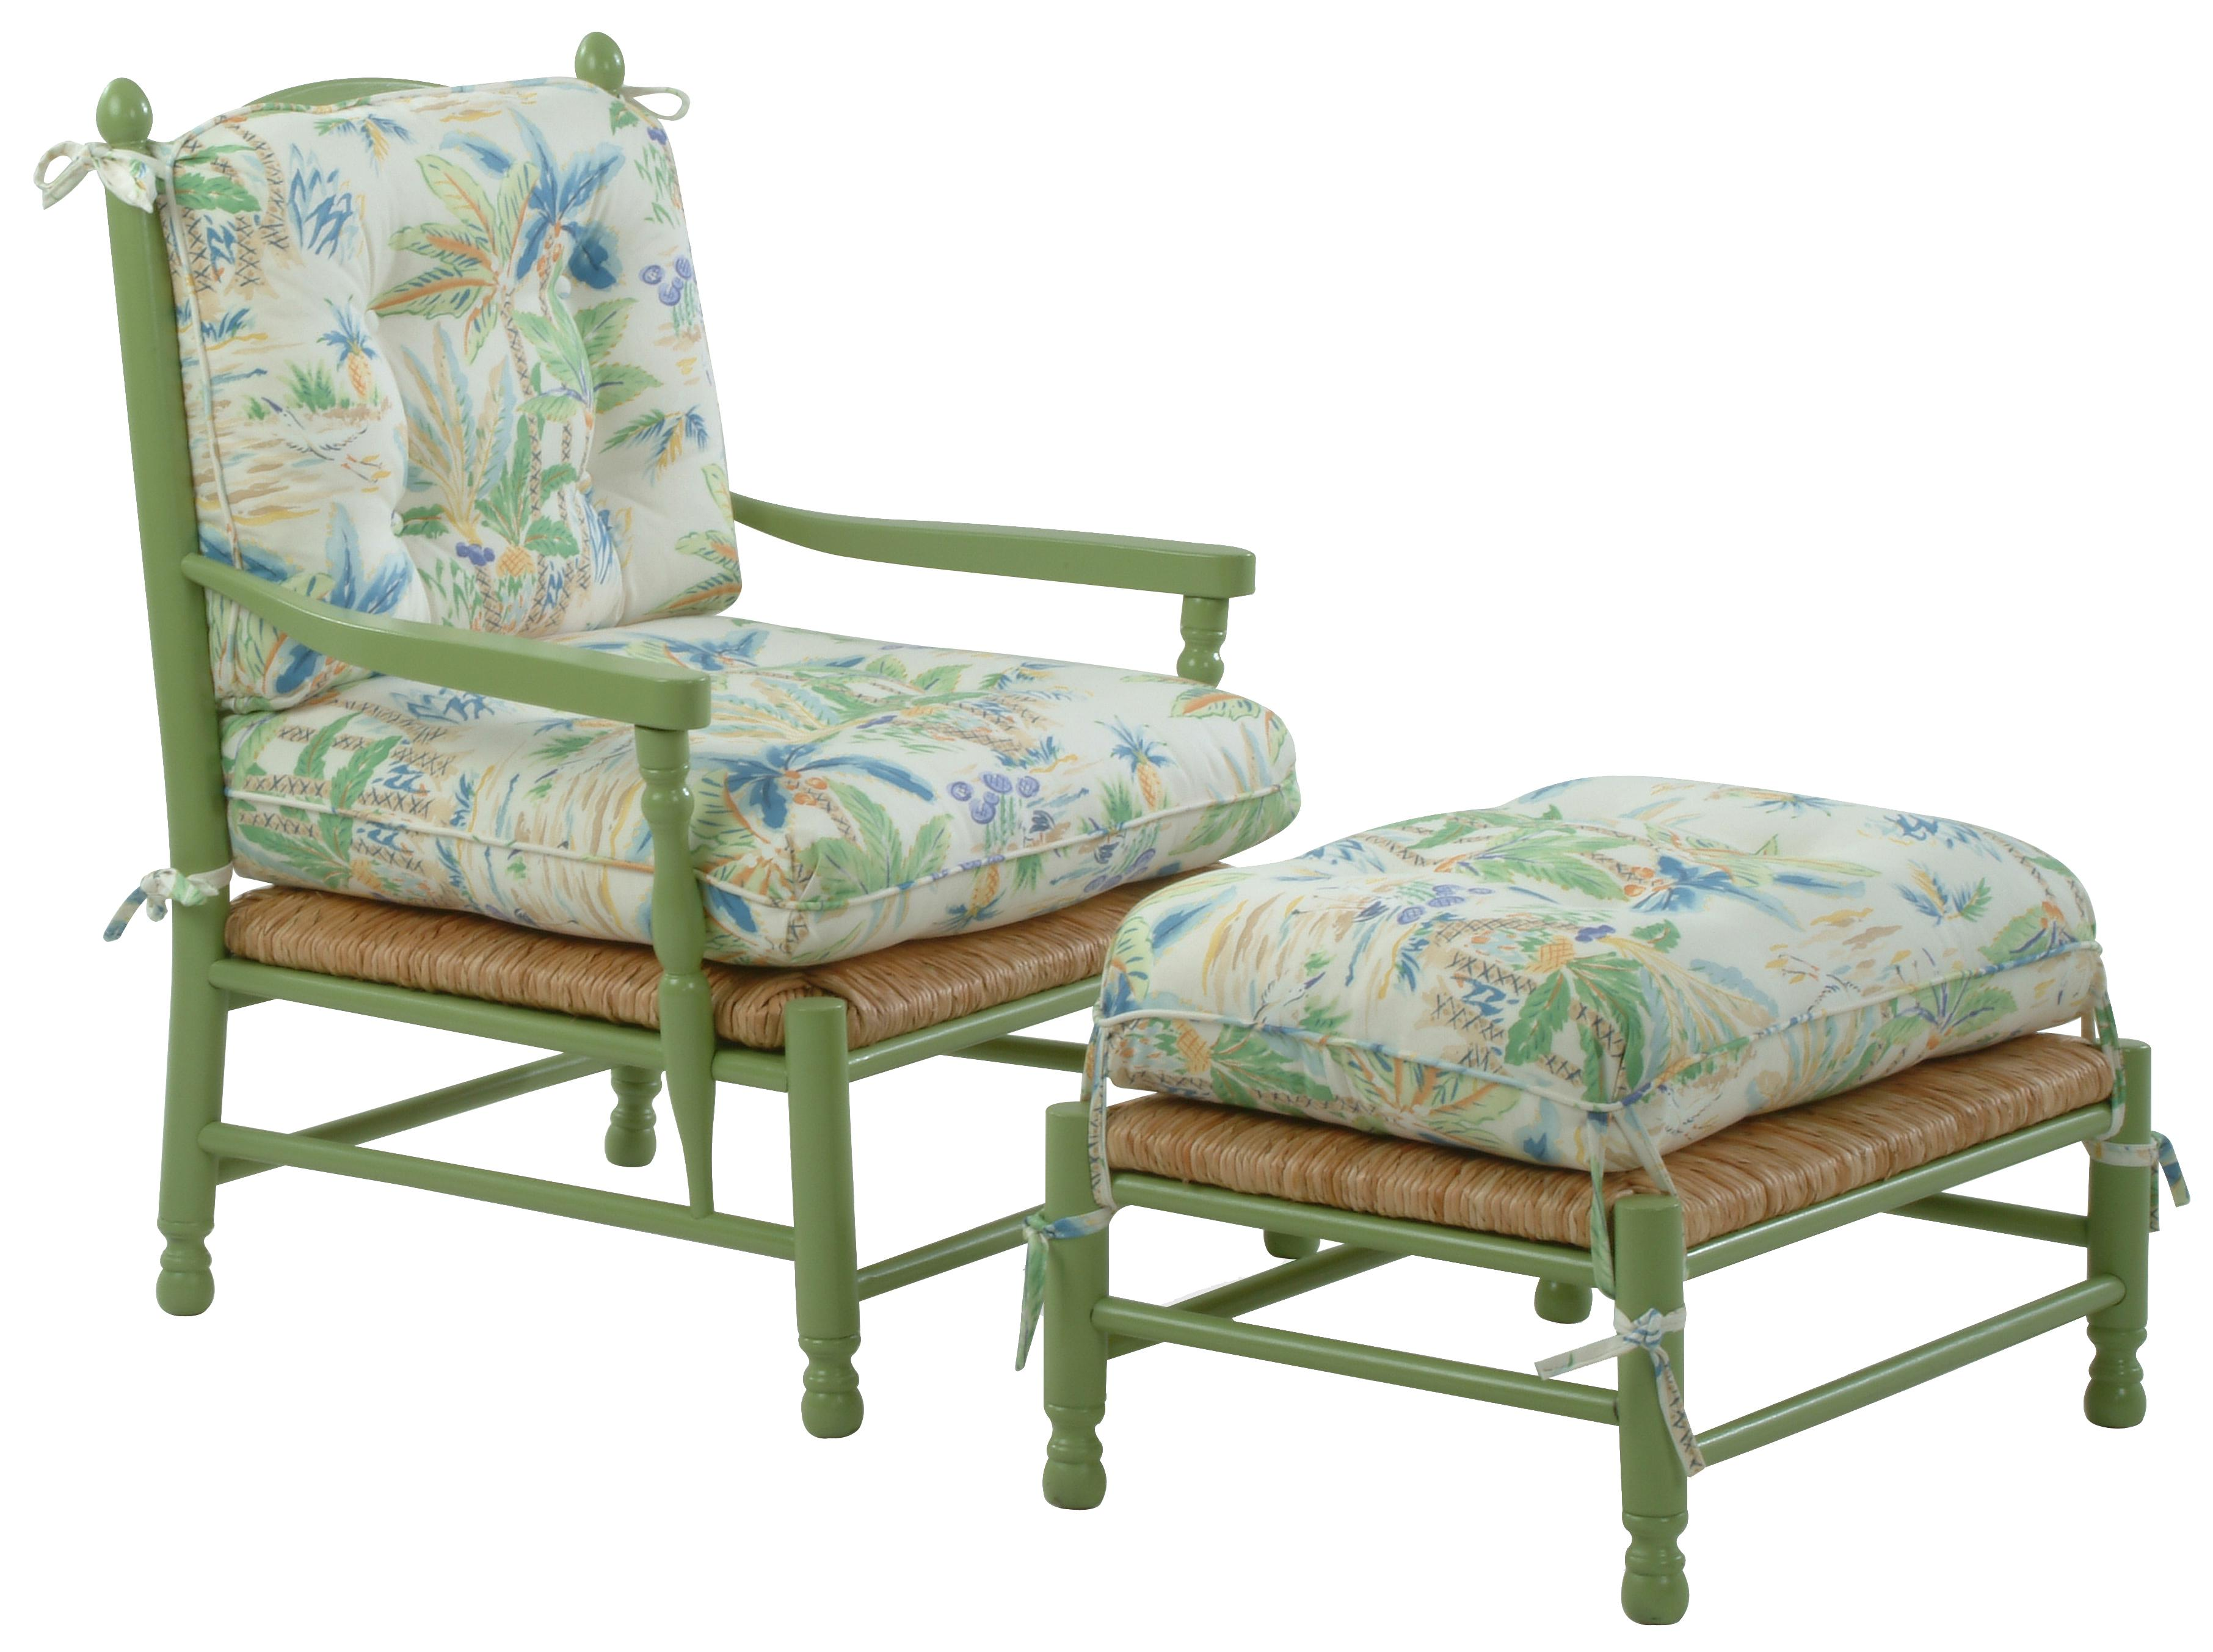 Accent Chairs Melbourne Braxton Culler Accent Chairs Coastal Style Vineyard Accent